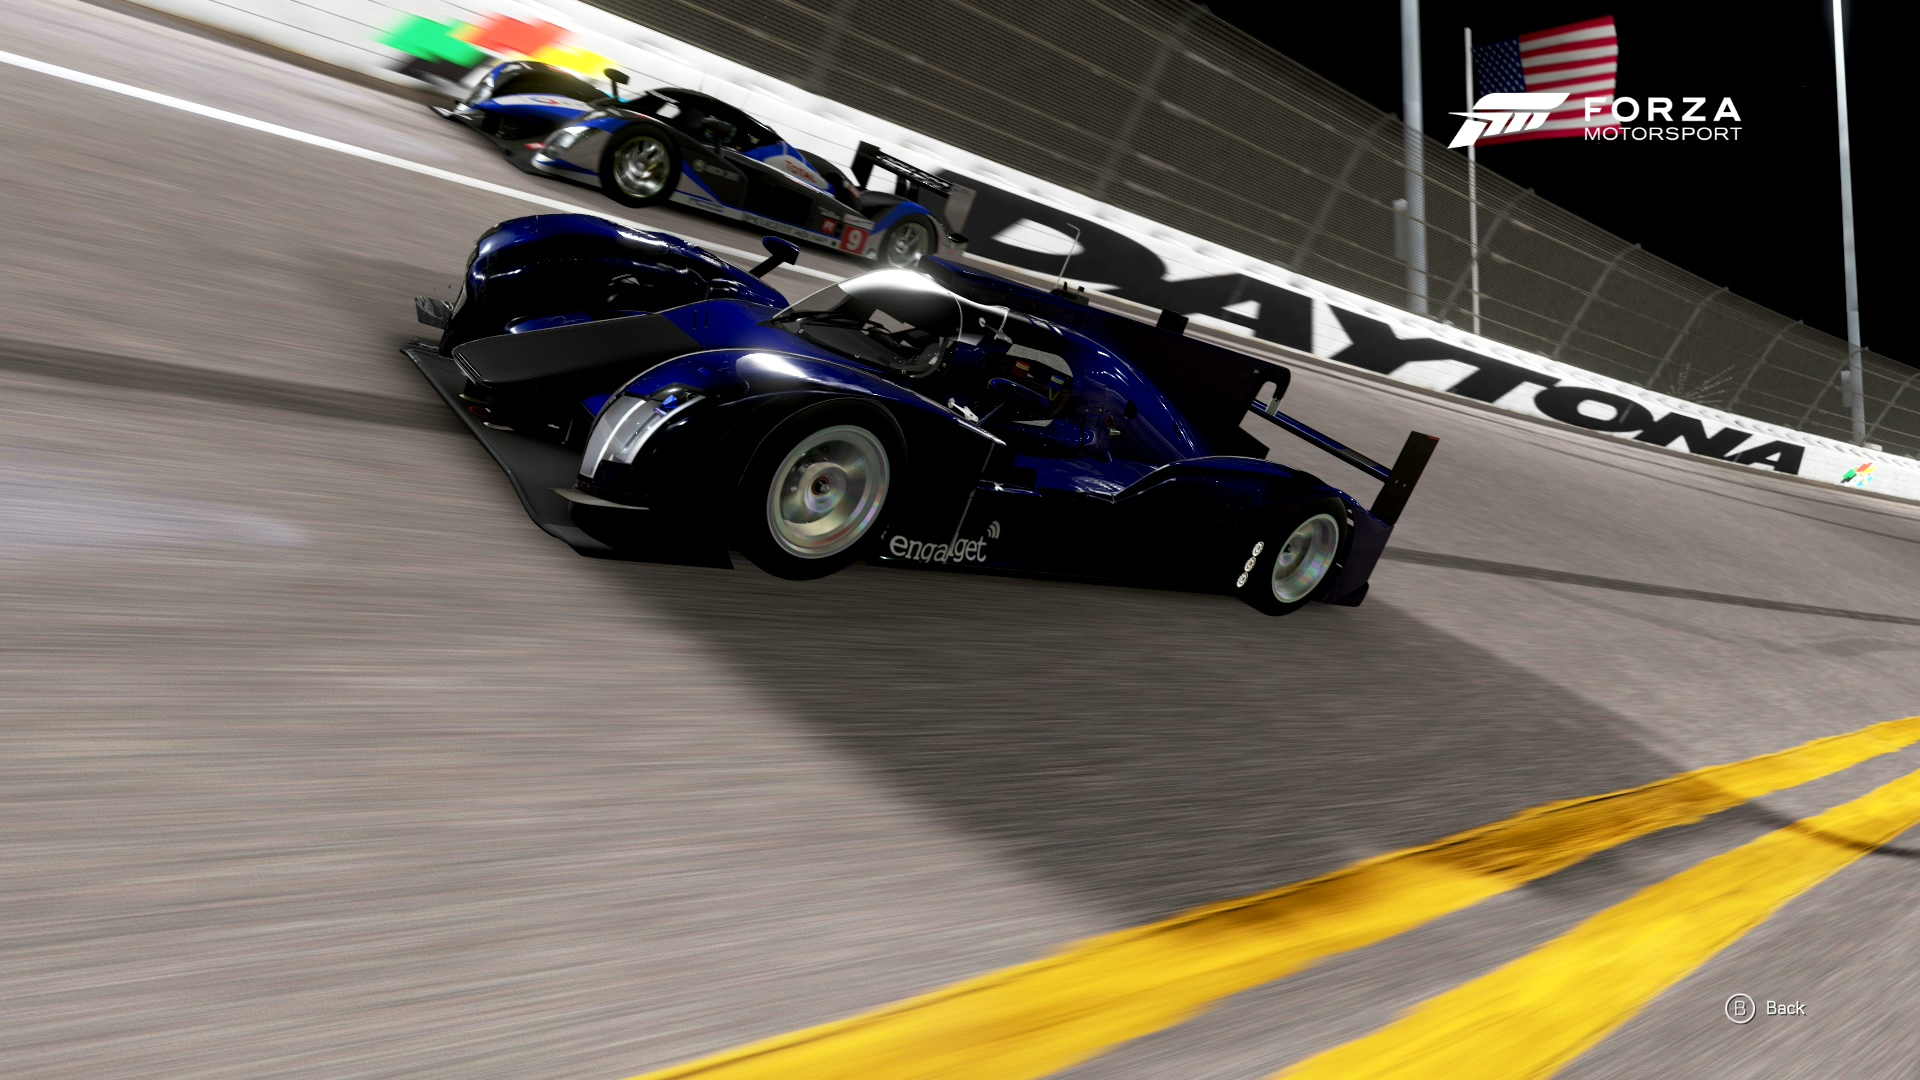 Playdate: We're going the distance in 'Forza Motorsport 6'